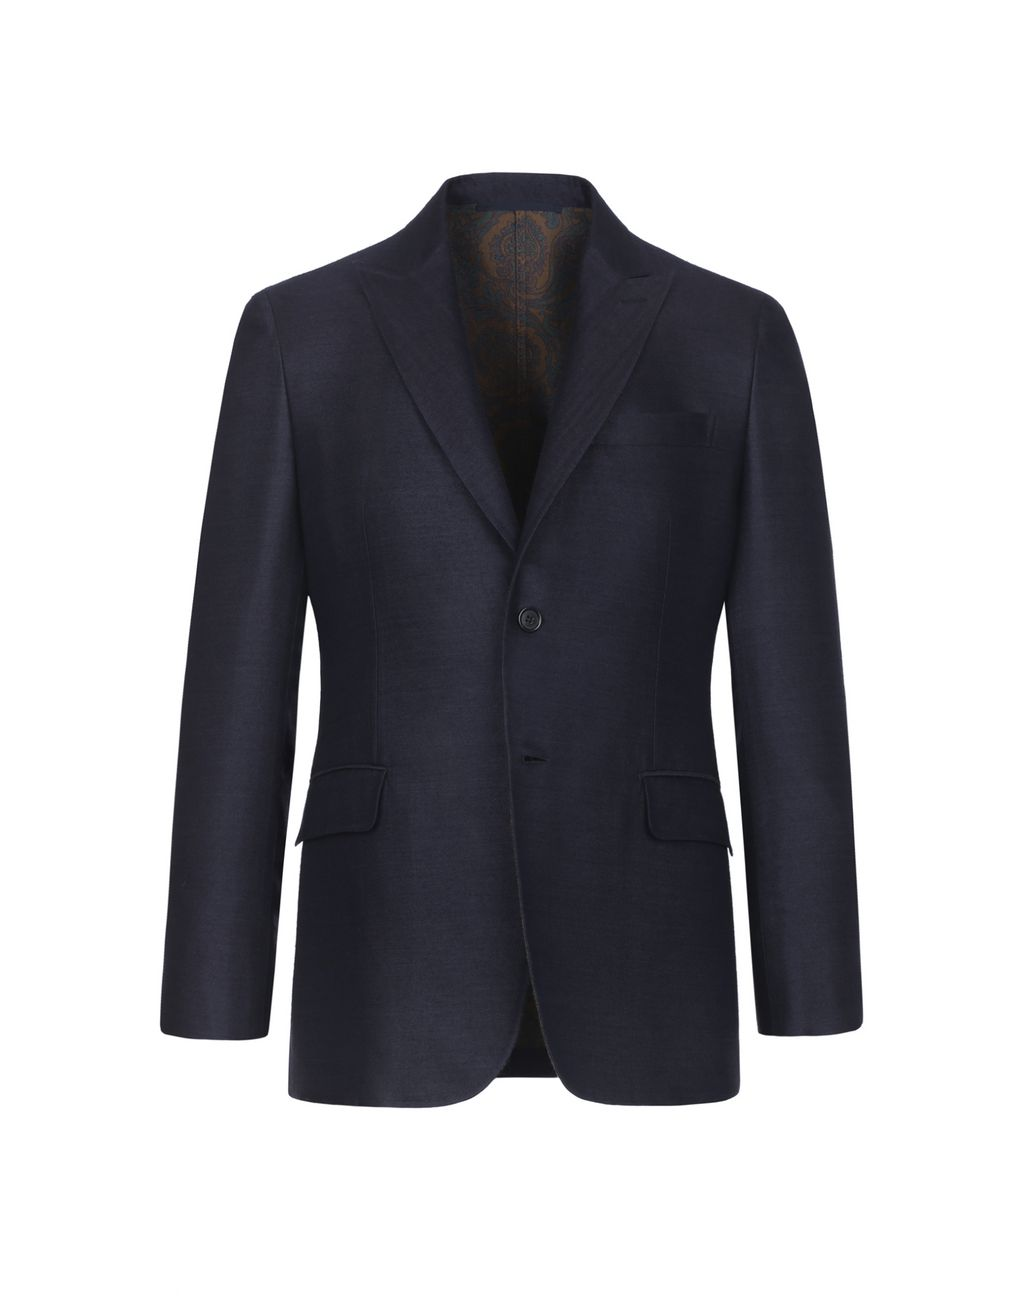 BRIONI Blue Jacket With Paisley Lining Suits & Jackets Man f